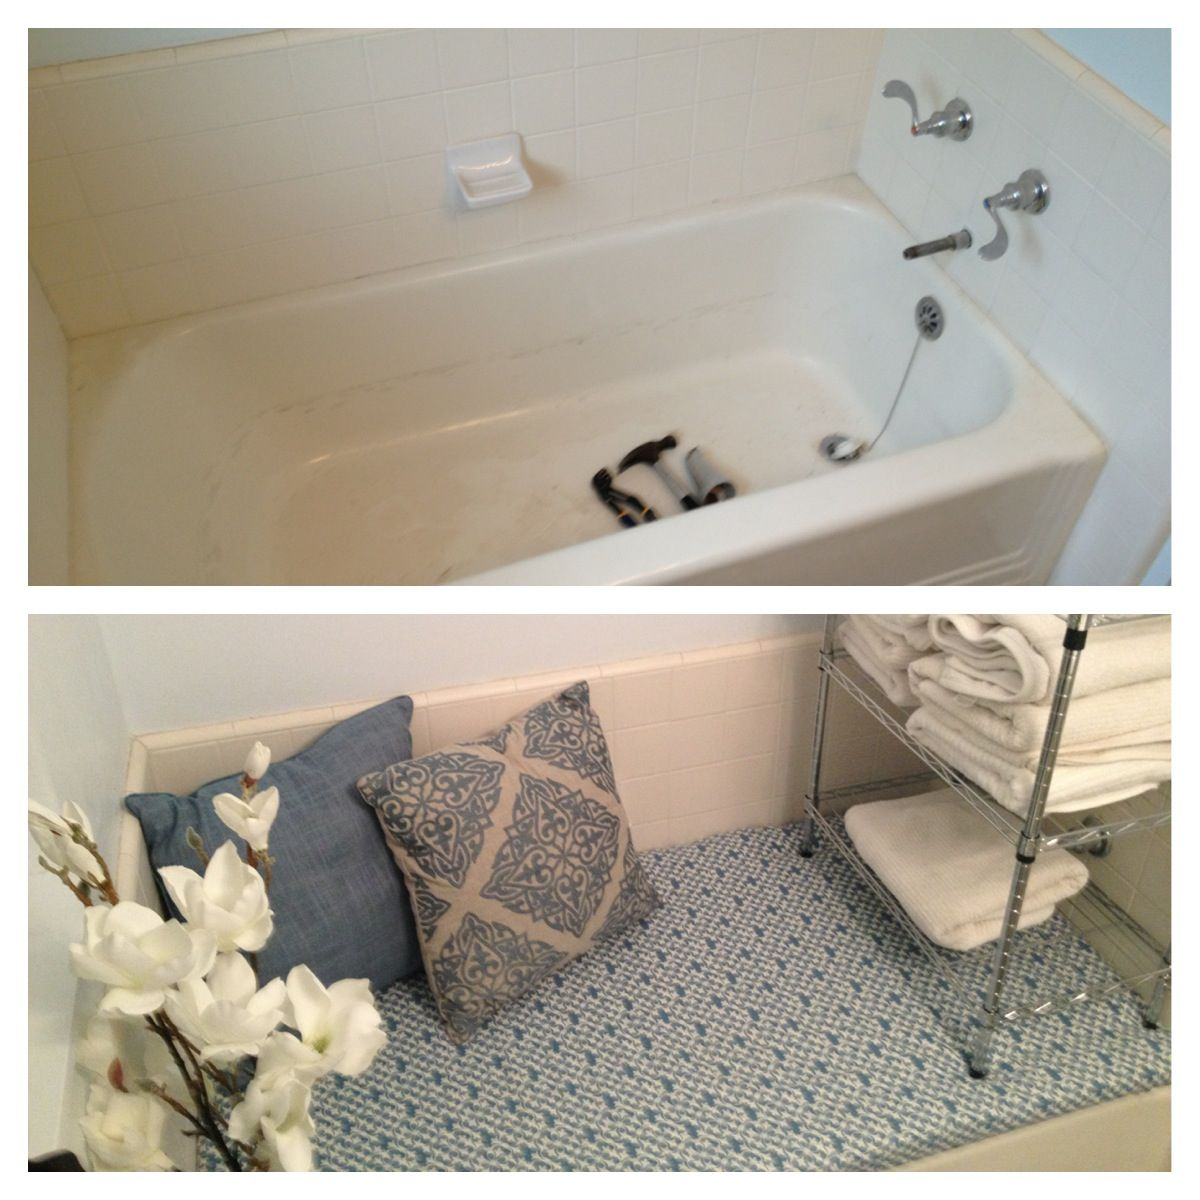 Losing Space Due To An Unused Bath Tub Instead Of Losing Space